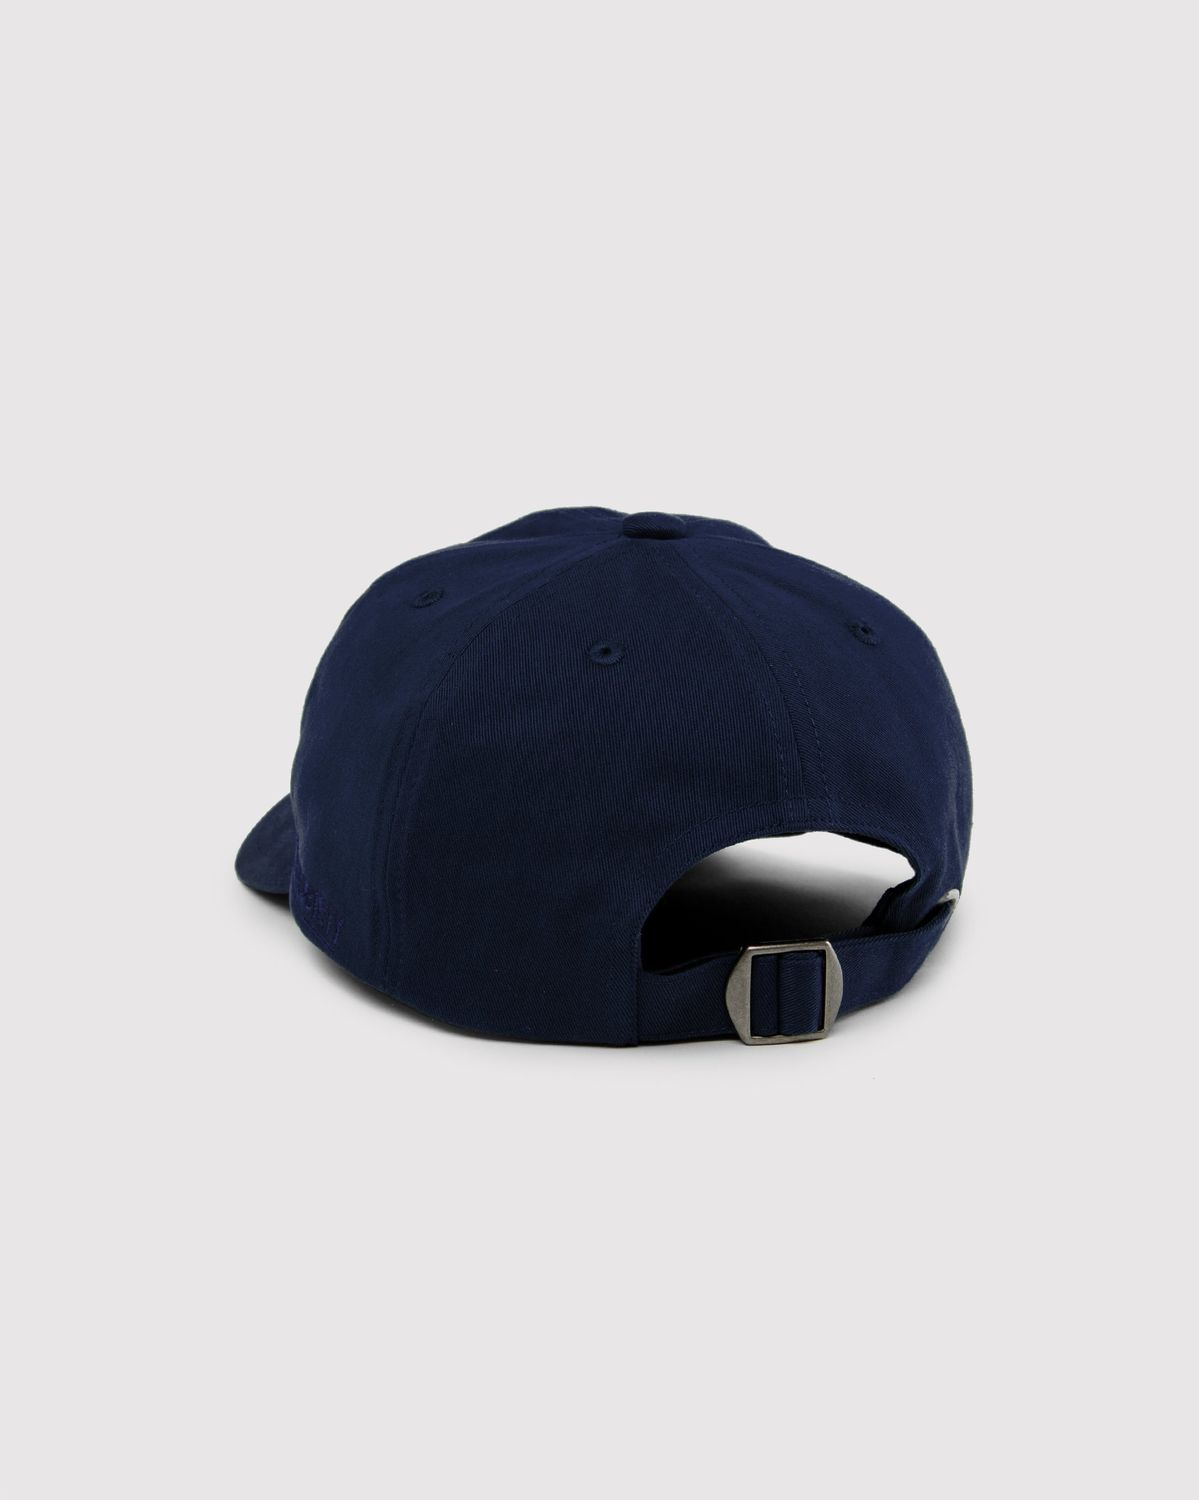 Highsnobiety Staples - Cap Navy - Image 2